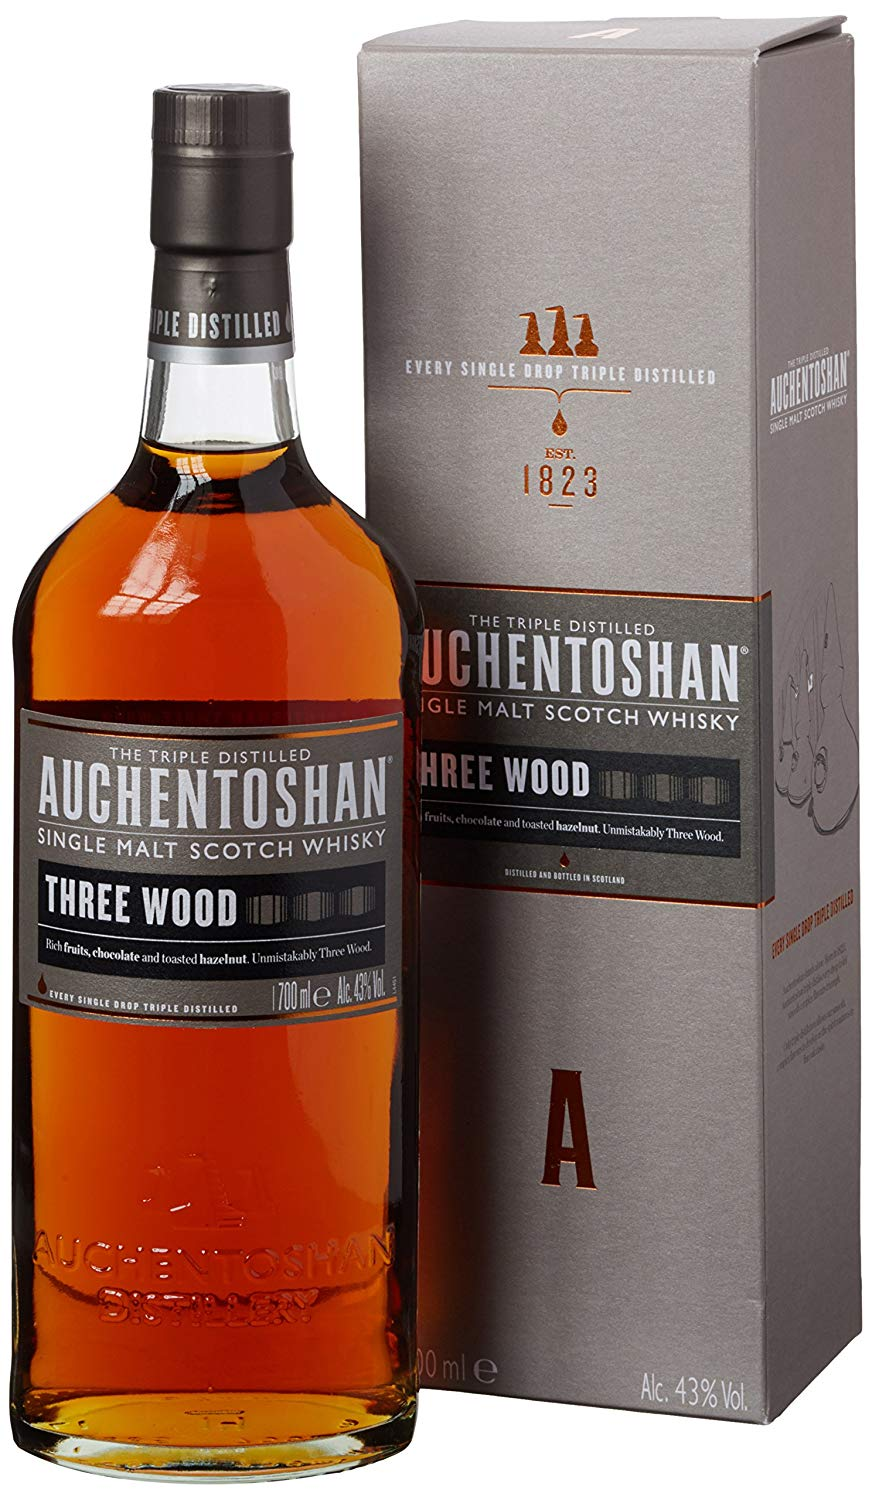 Auchentoshan Three Wood Single Malt Scotch Whisky, 70 Cl for £27.50